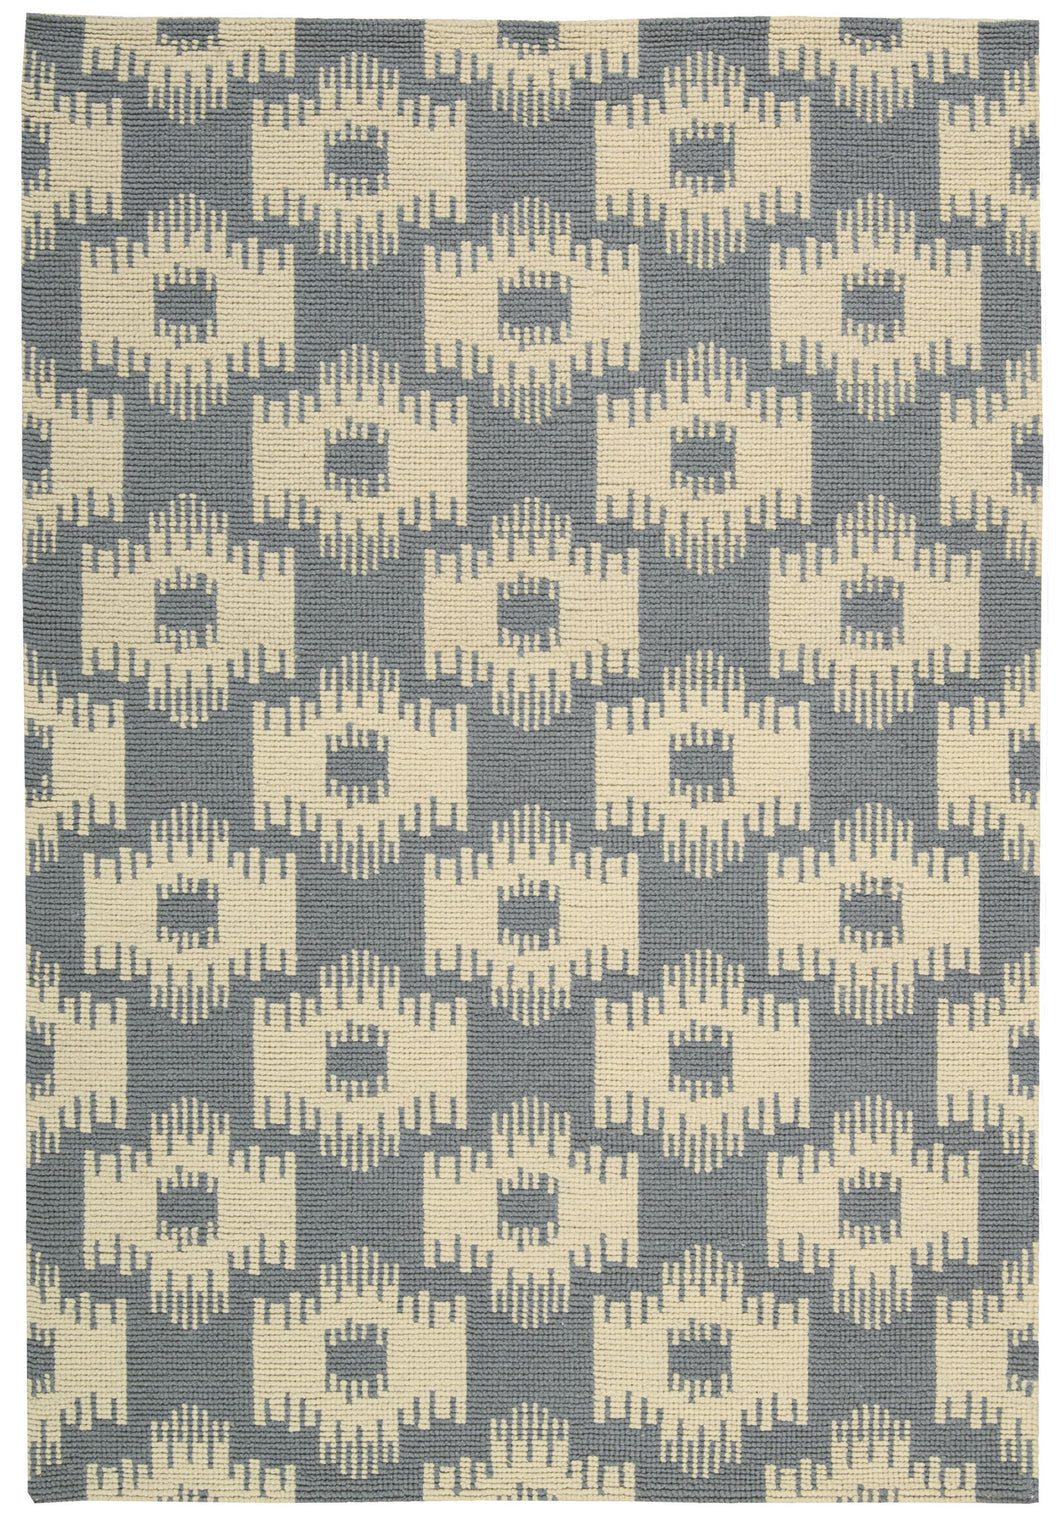 Barclay Butera Prism Slate Area Rug By Nourison PRI32 SLATE (Rectangle) | BOGO USA